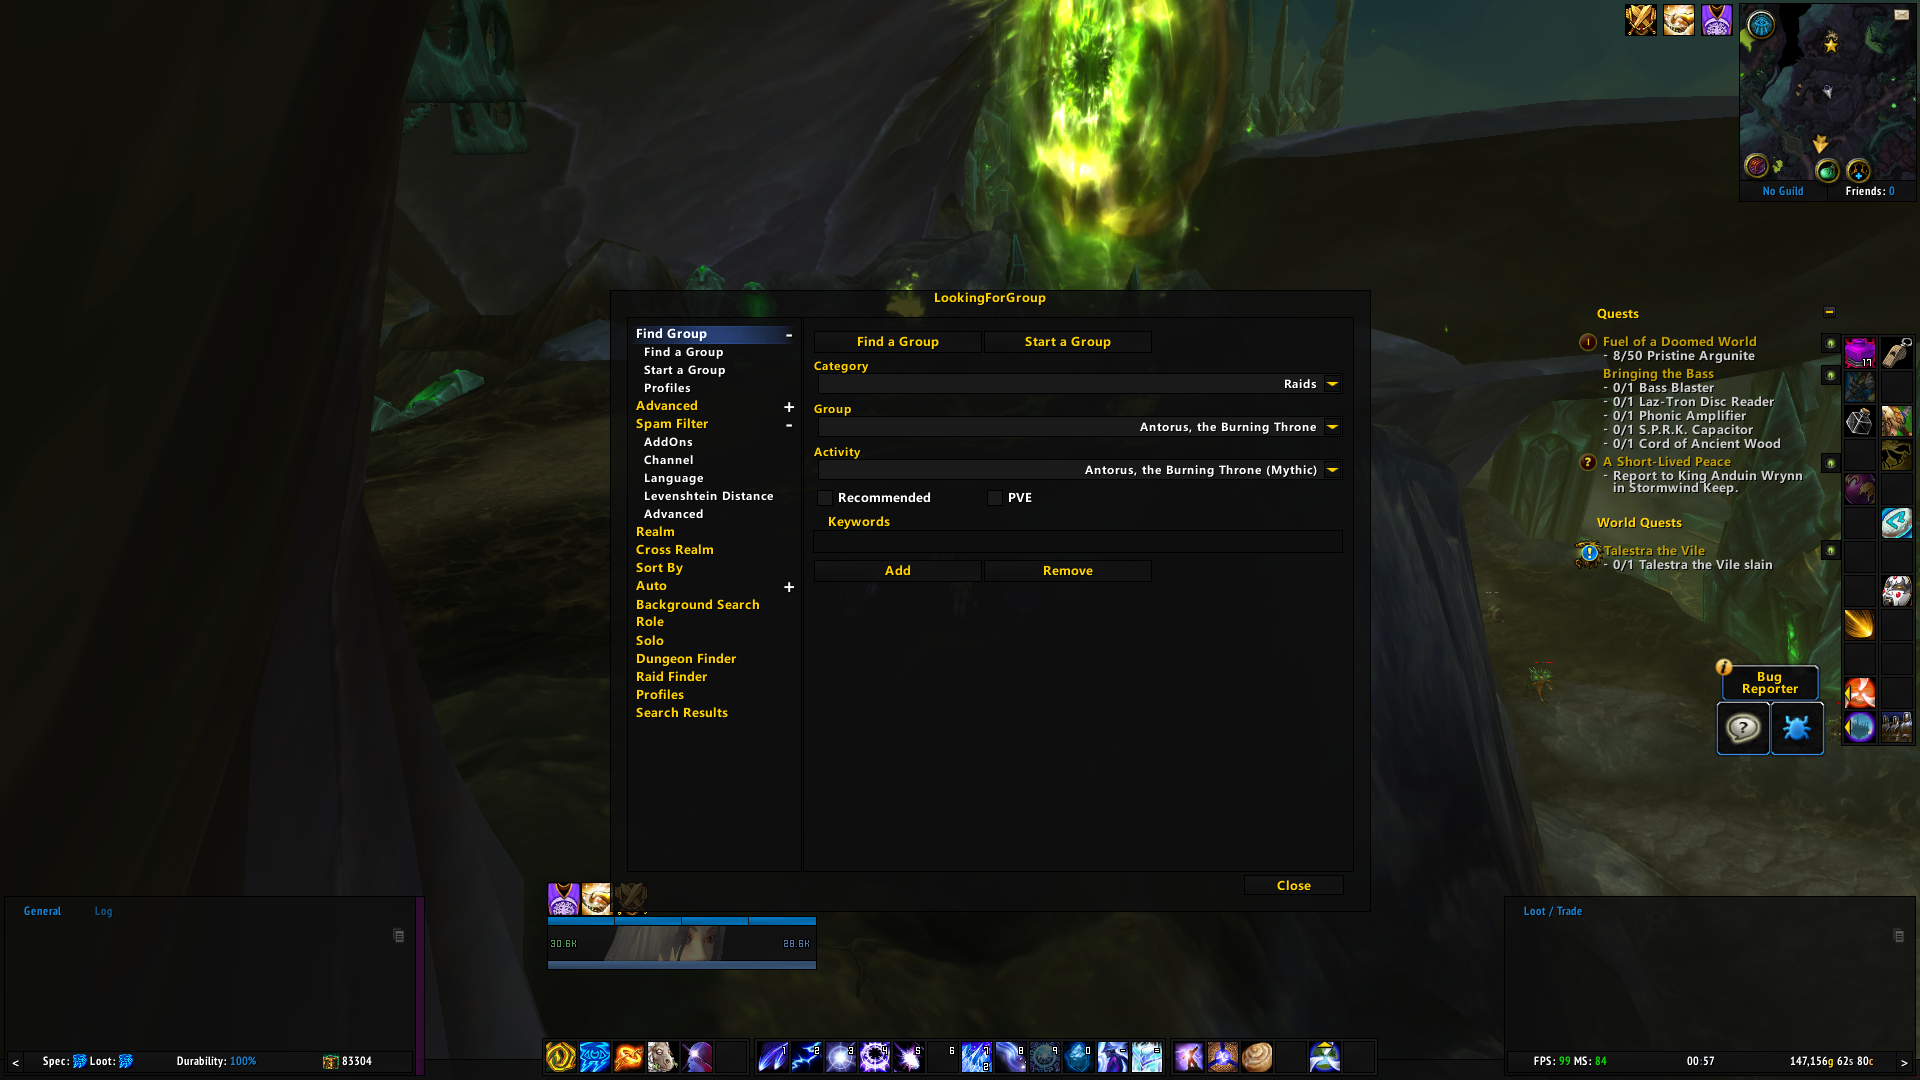 LookingForGroup (LFG) - Addons - World of Warcraft - CurseForge